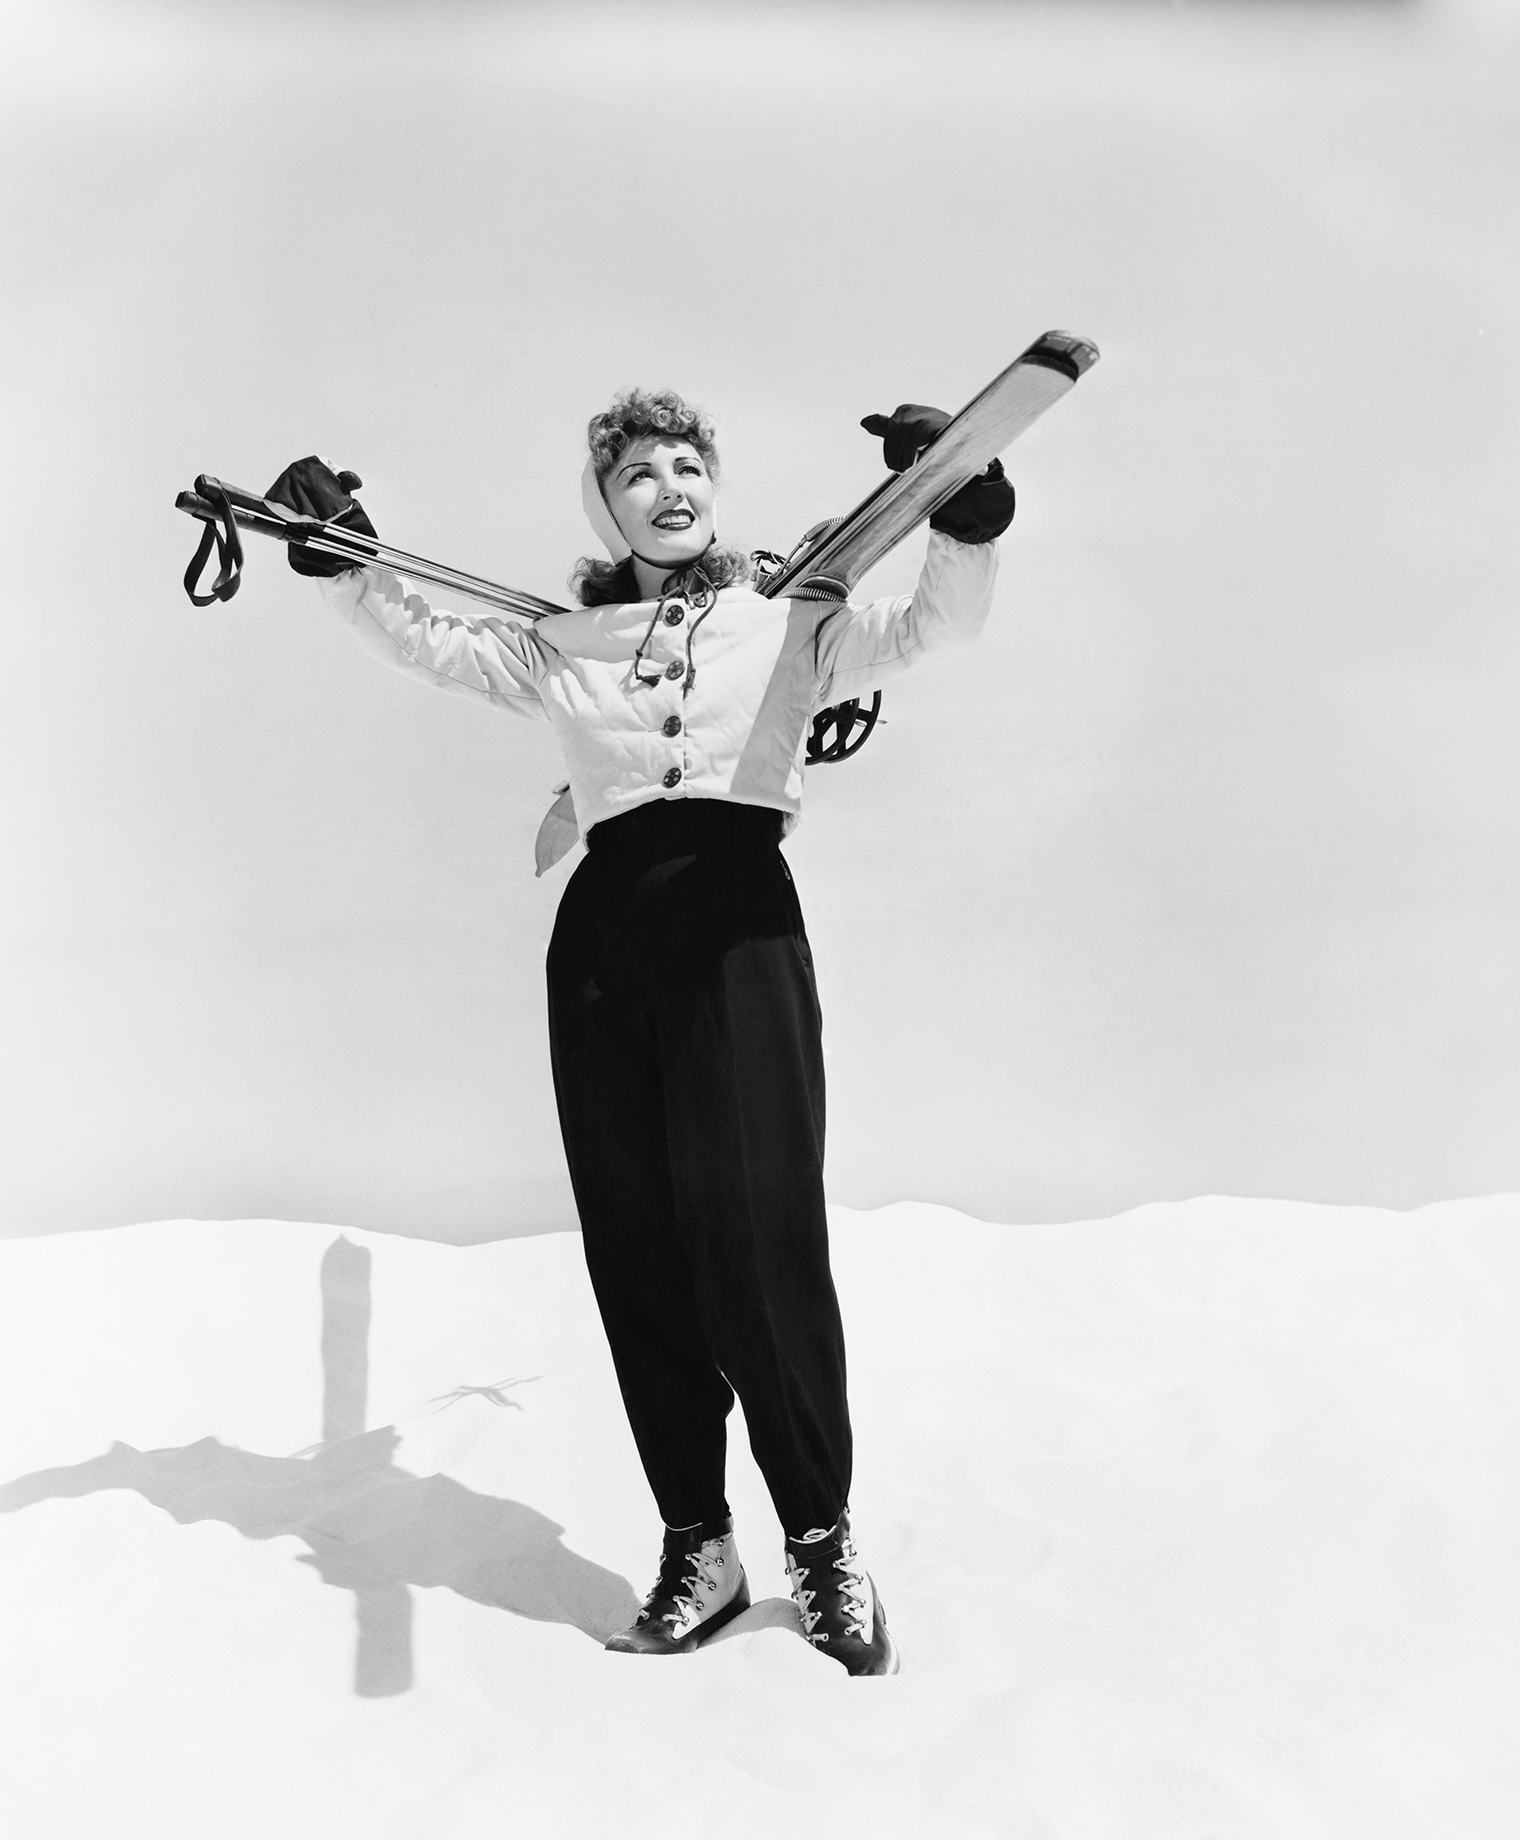 a female skier poses in snow with her skis on her shoulders